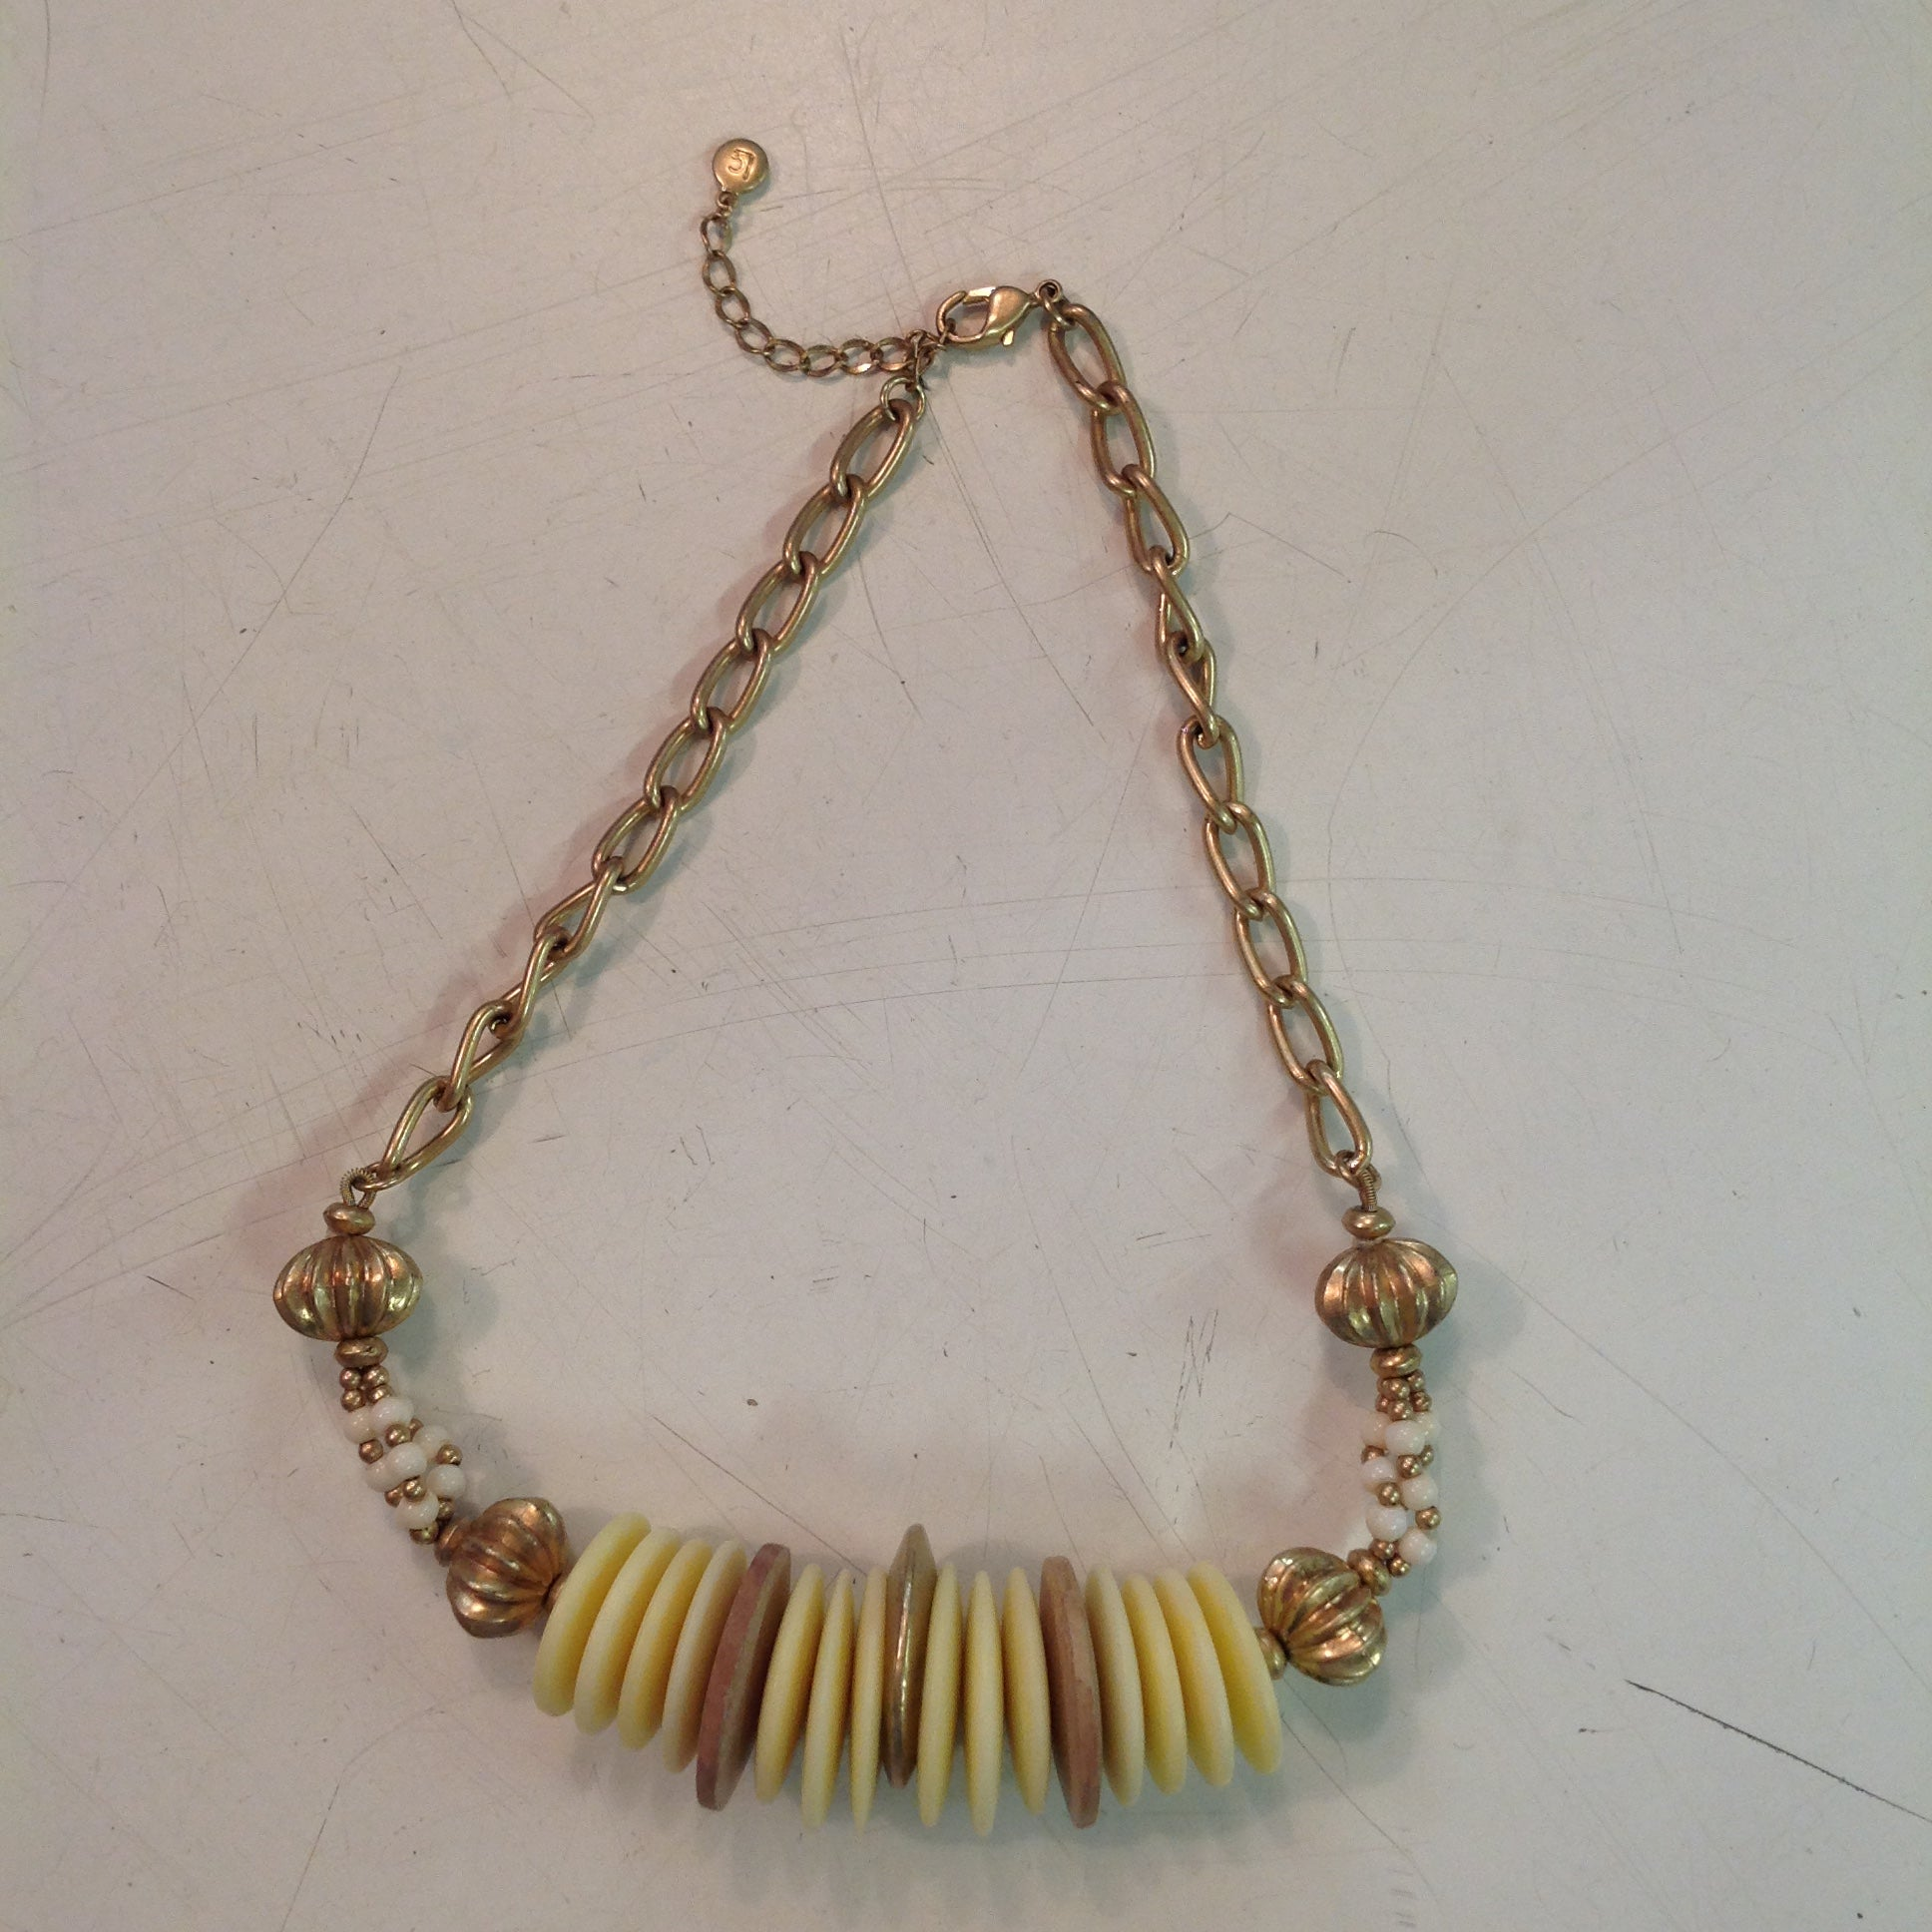 Vintage Liz Claiborne Goldtone Chain Choker with Plastic Wood Metal Disc Roll and White Cluster Beads